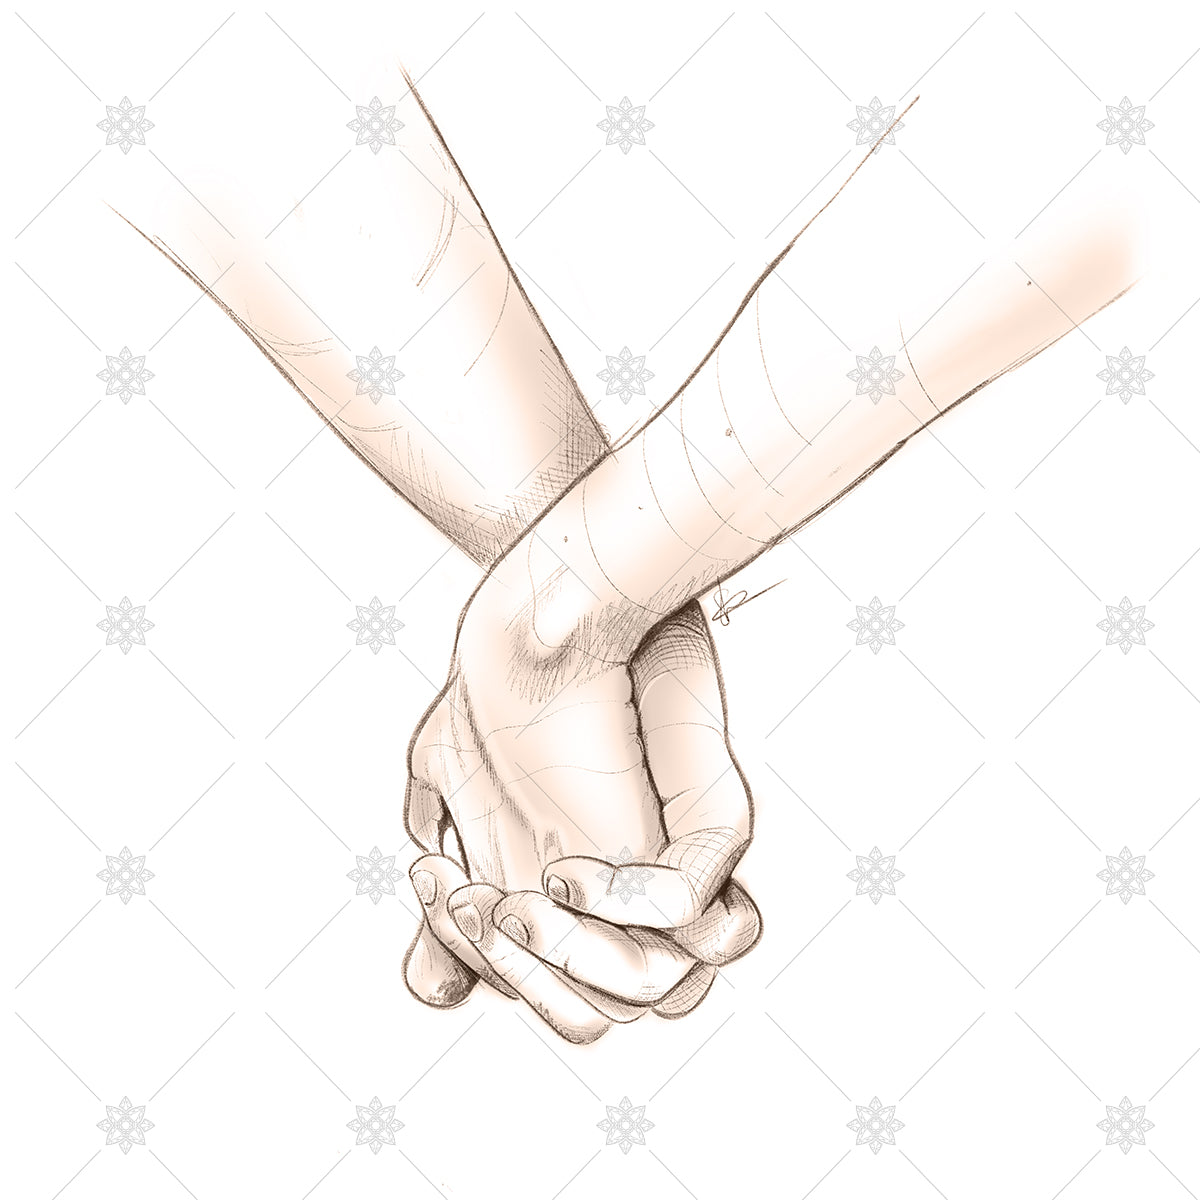 couple holding hands pencil sketch